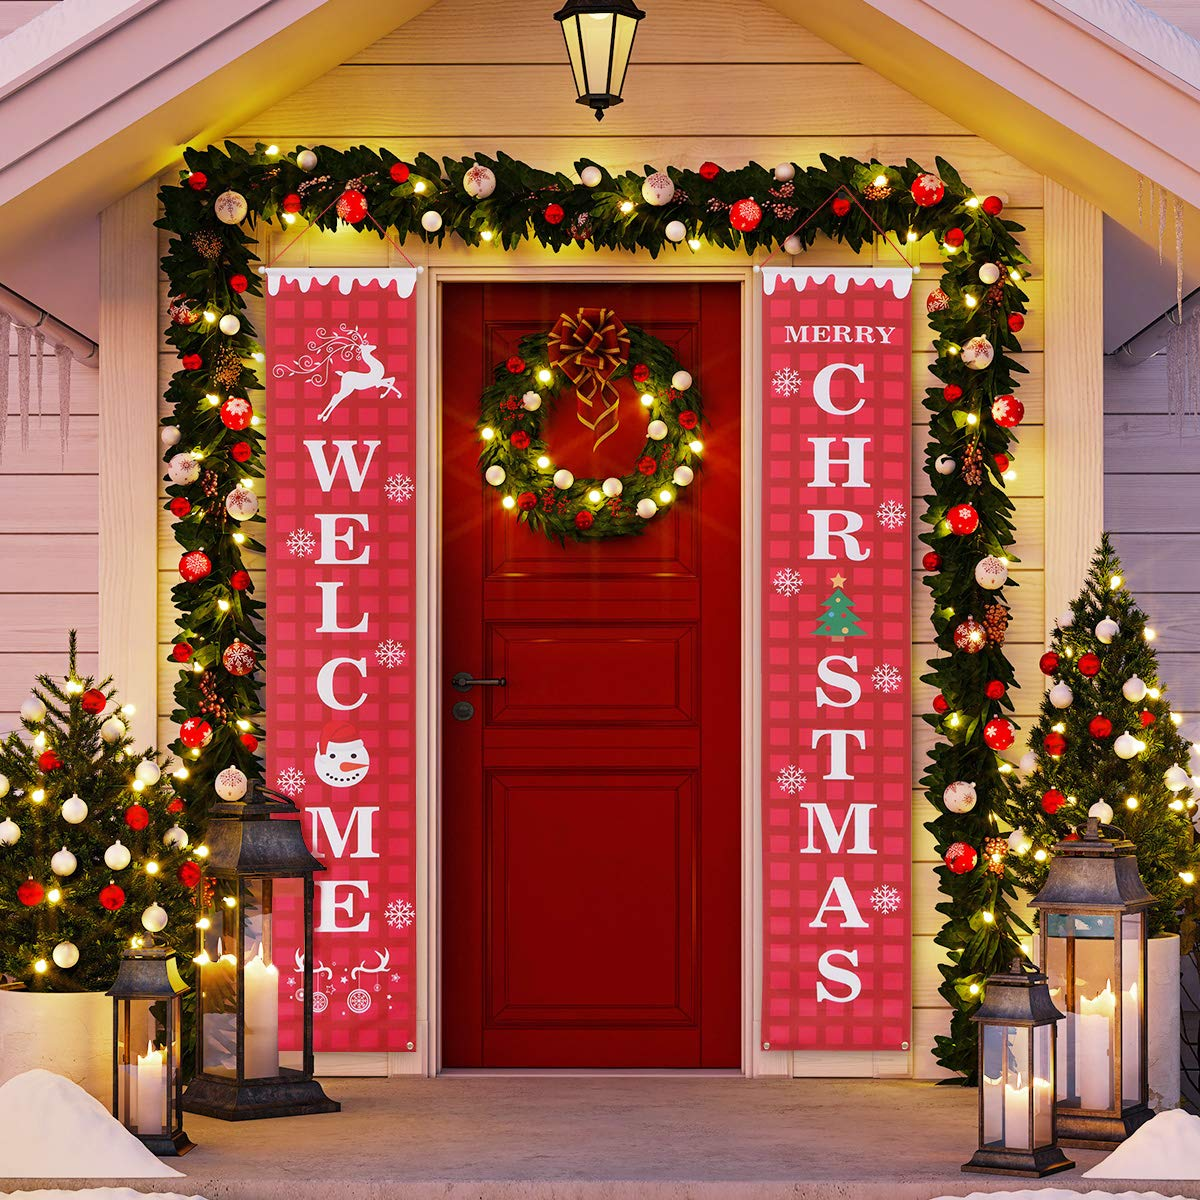 Vosarea Merry Christmas Banner Outdoor Indoor Decorations Welcome Christmas Porch Sign Red Xmas Decor Hanging Banner For Home Wall Door Apartment